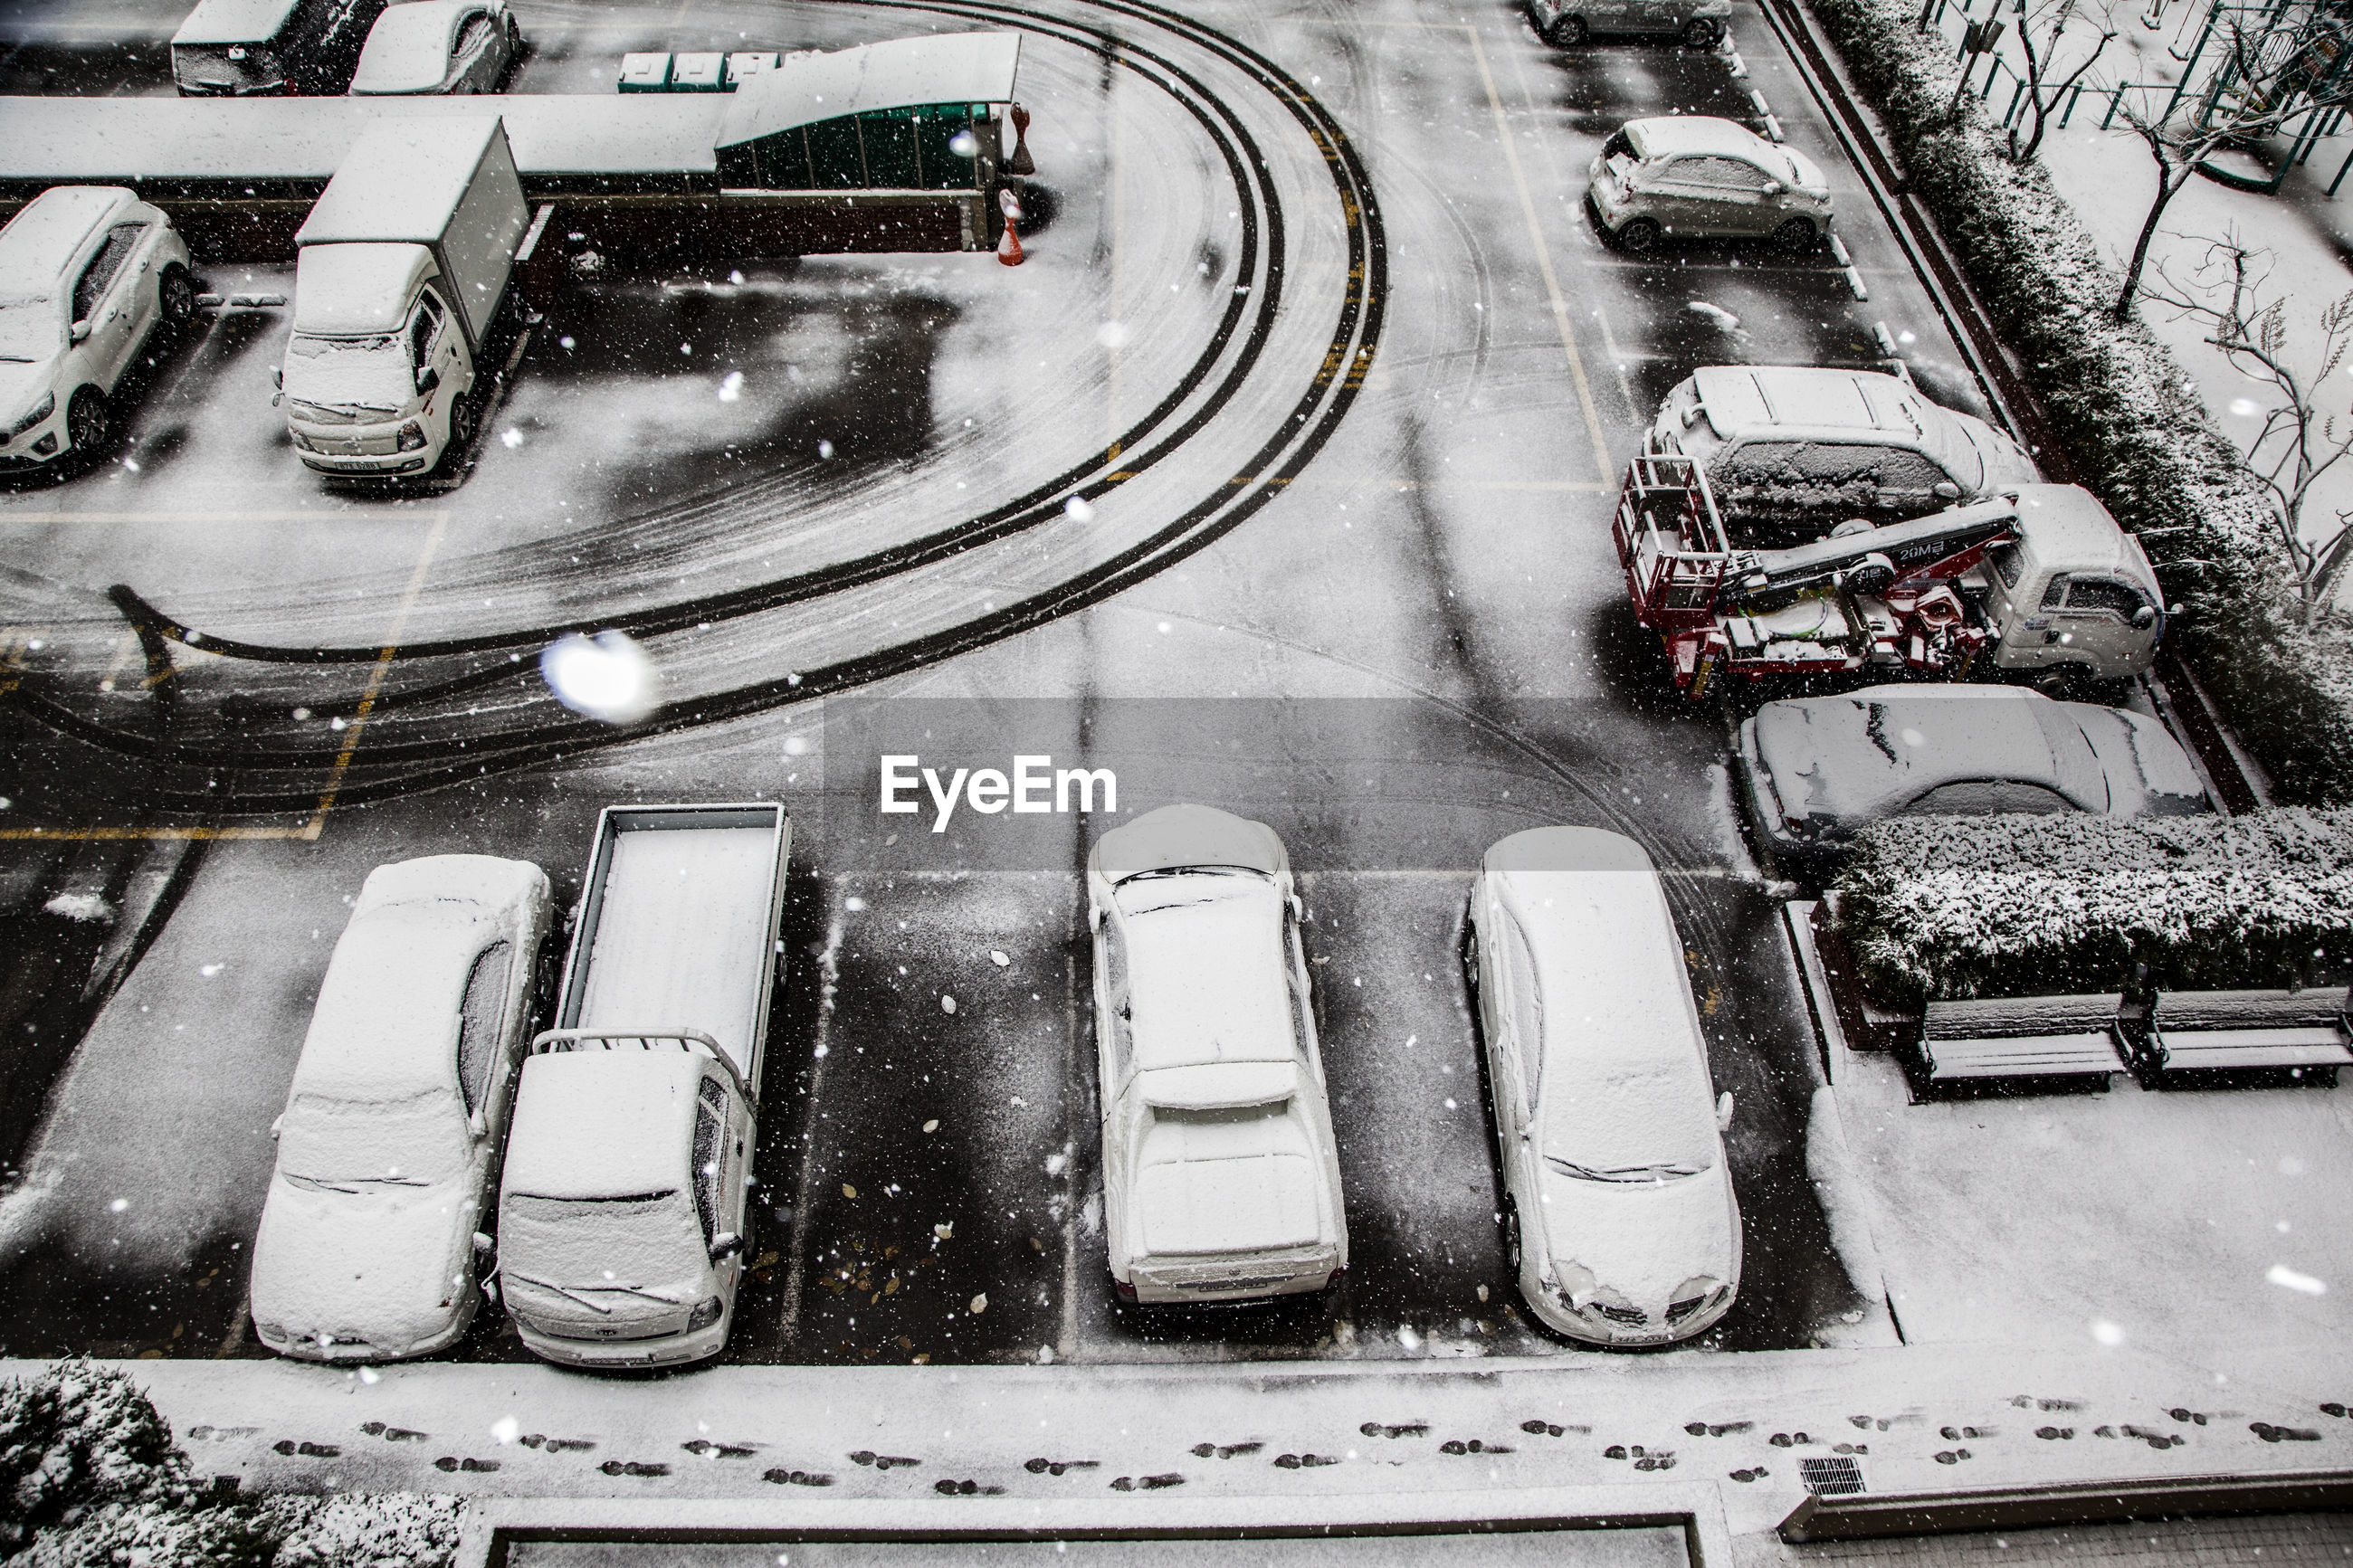 High angle view of snow covered vehicles parked at parking lot